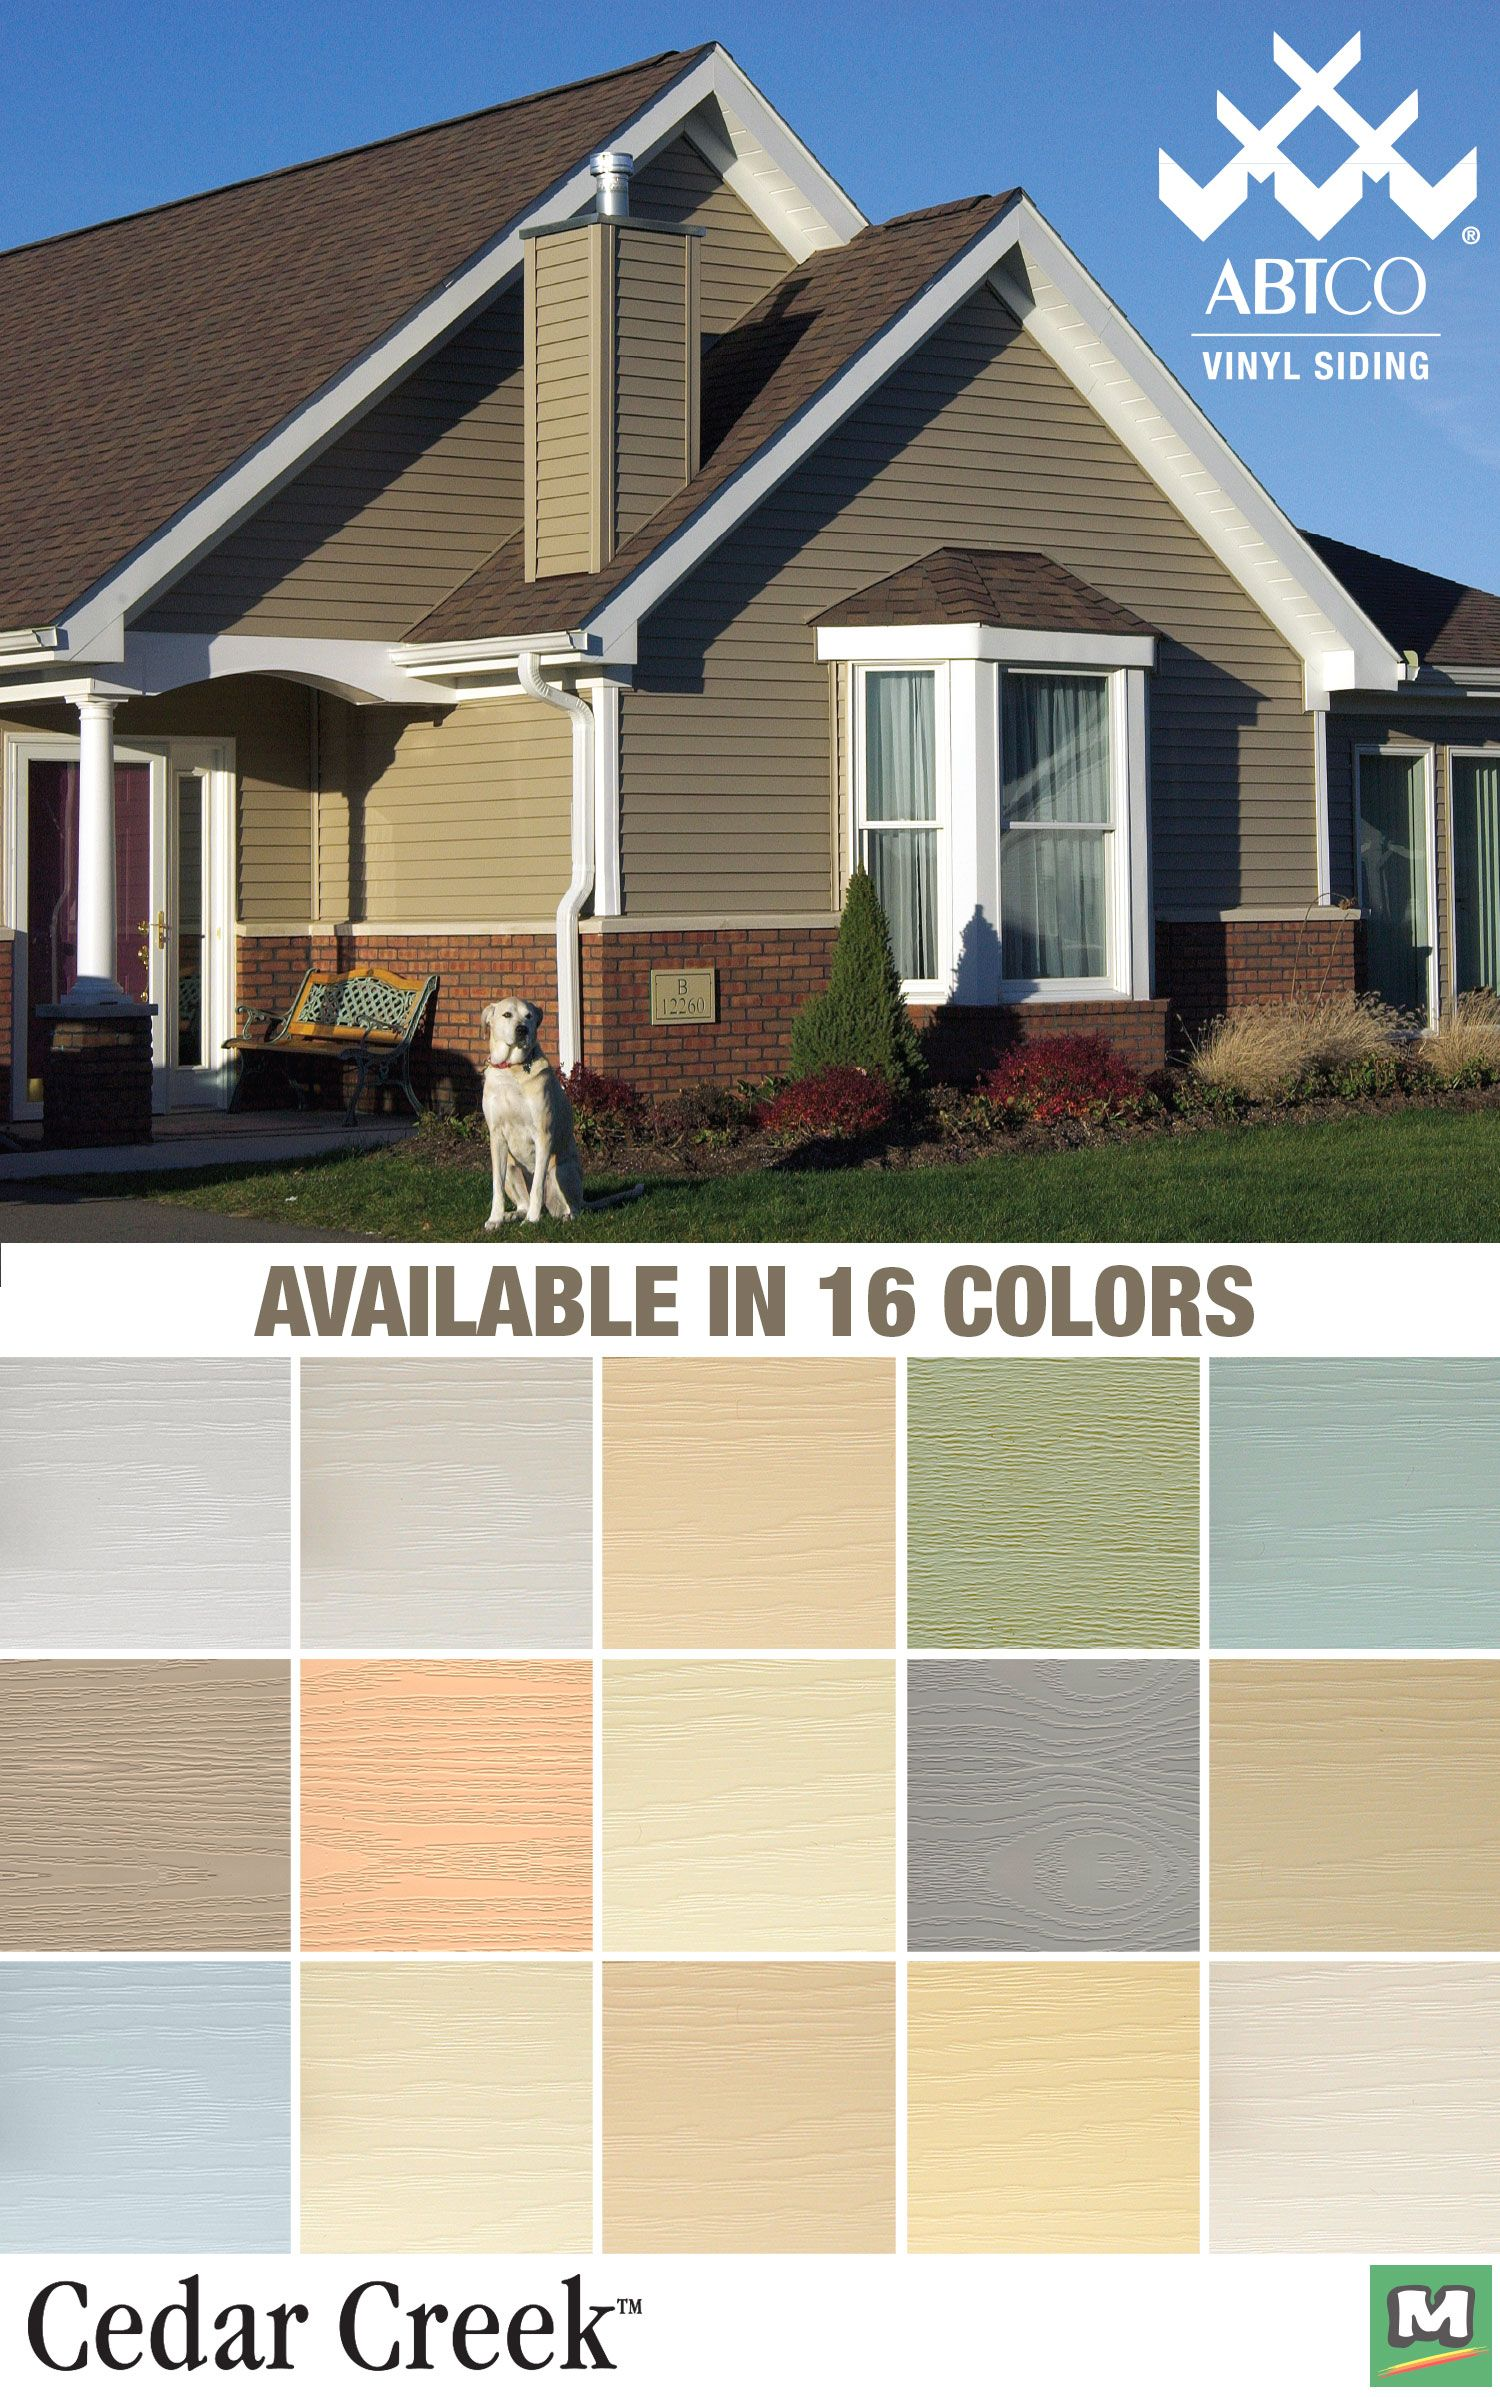 Up Your Curb Appeal And Add Value To Your Home With Cedar Creek Vinyl Siding It S Textured With A Weathered Woodgrain Vinyl Siding Updating House Curb Appeal